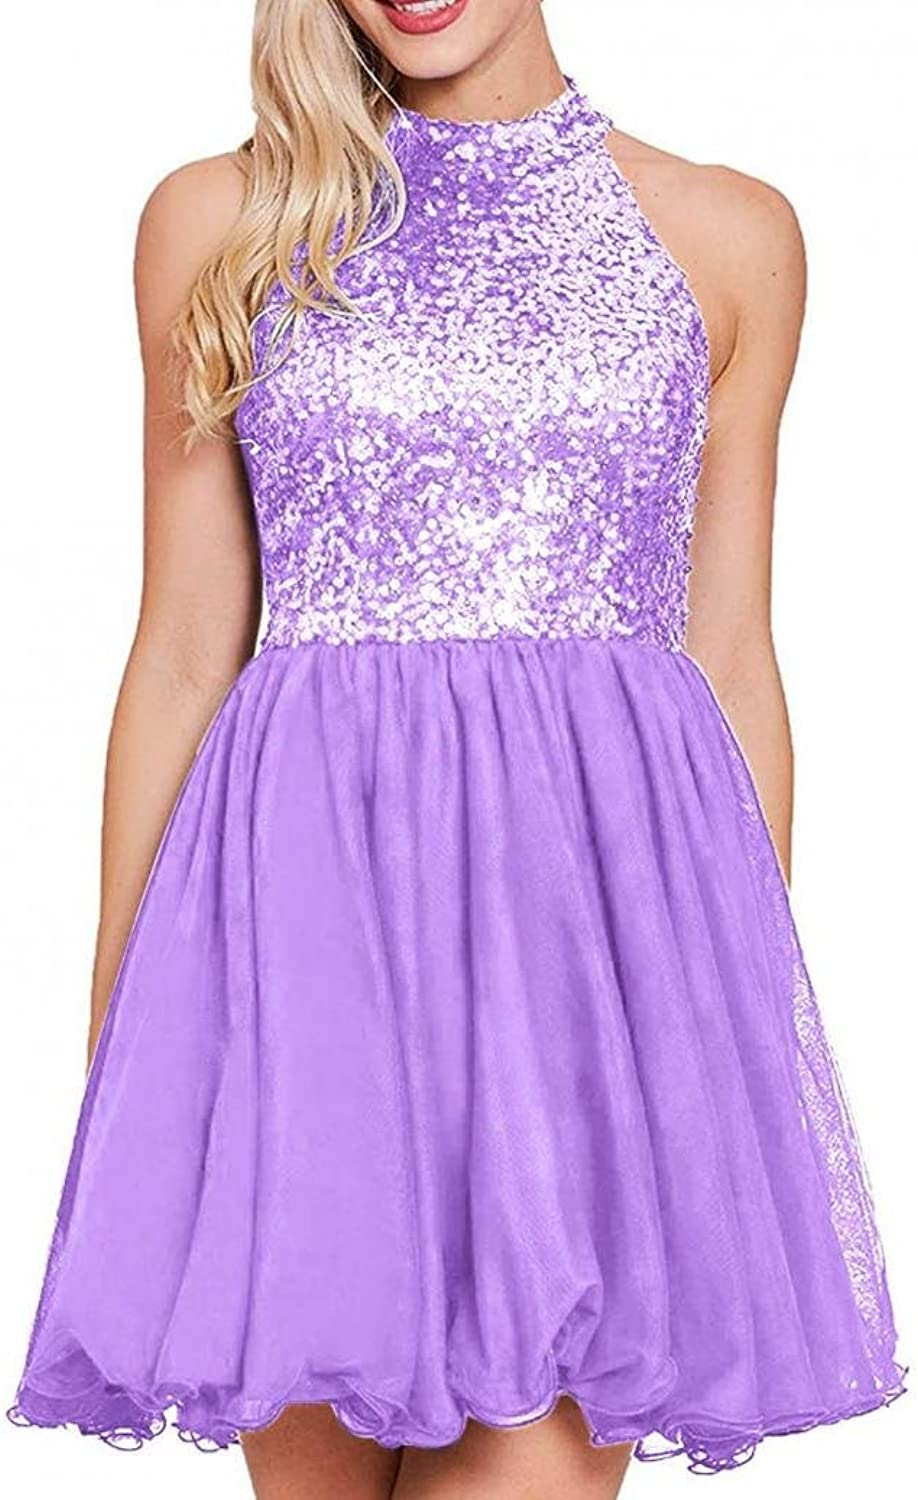 Dannifore High Neck Sequin Homecoming Dresses Open Back Short Cocktail Party Dress